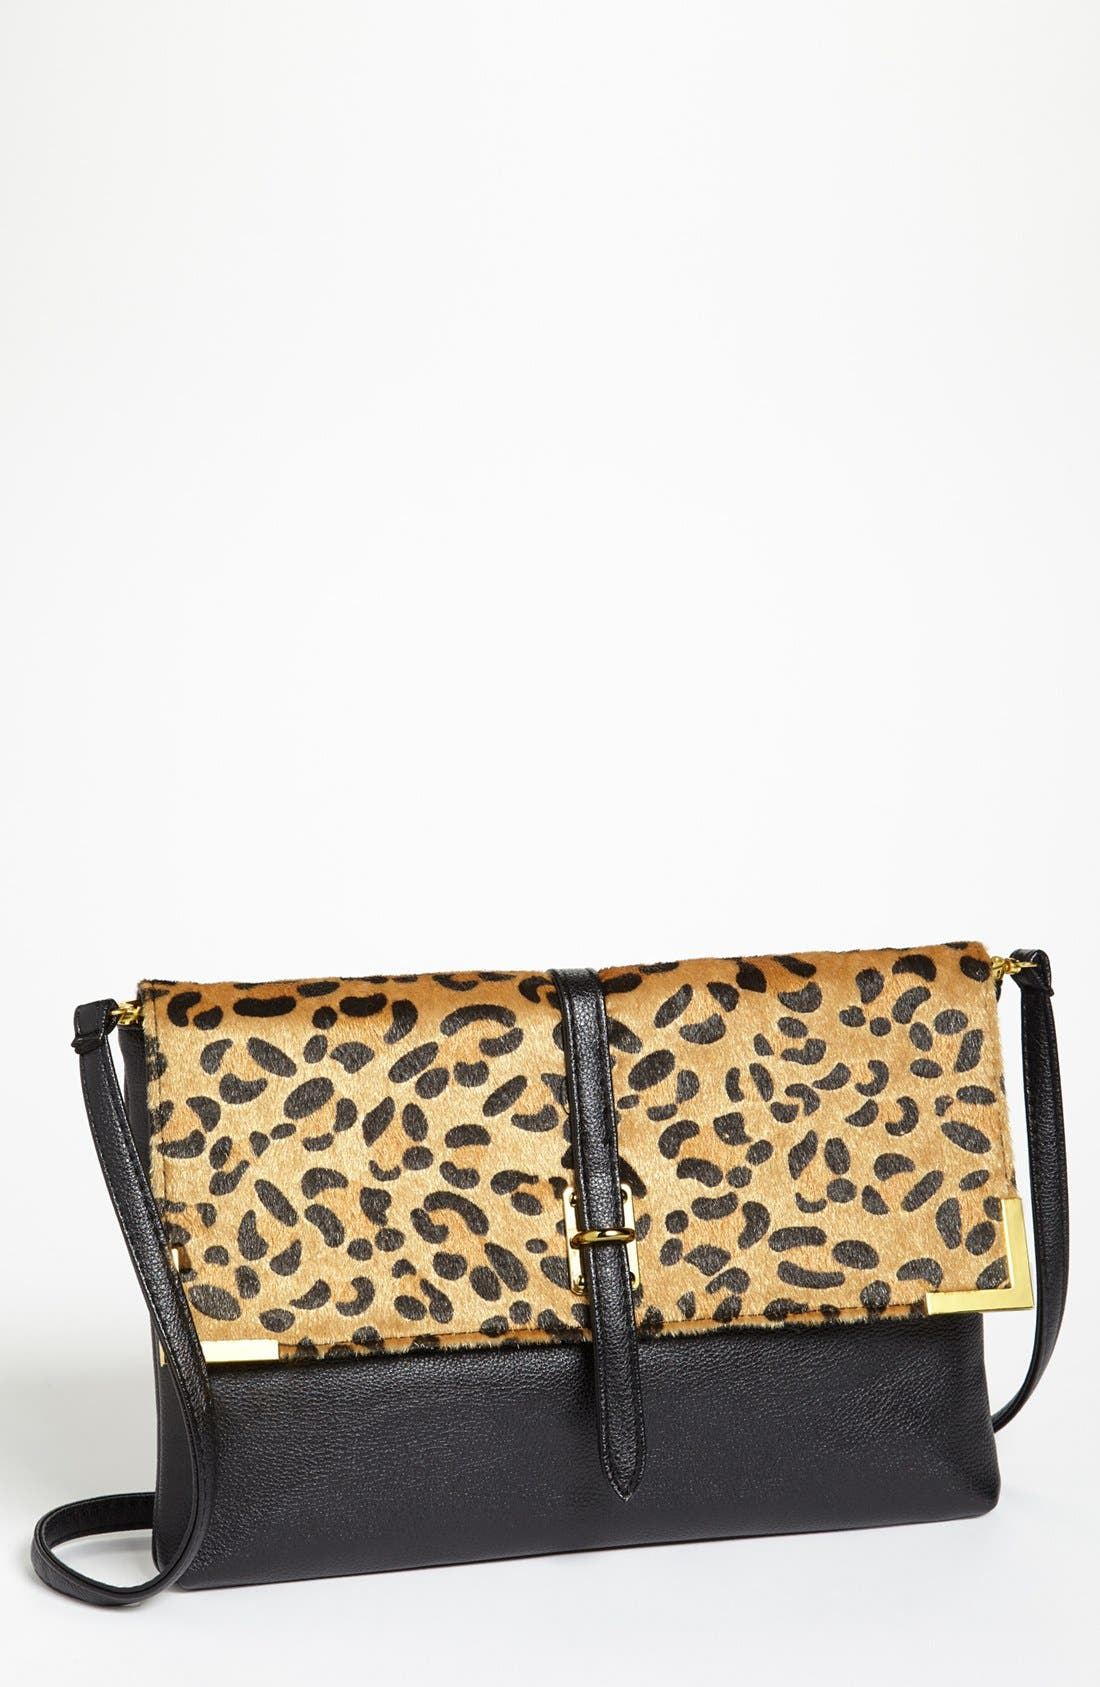 Main Image - Natasha Couture Leopard Print Shoulder Bag